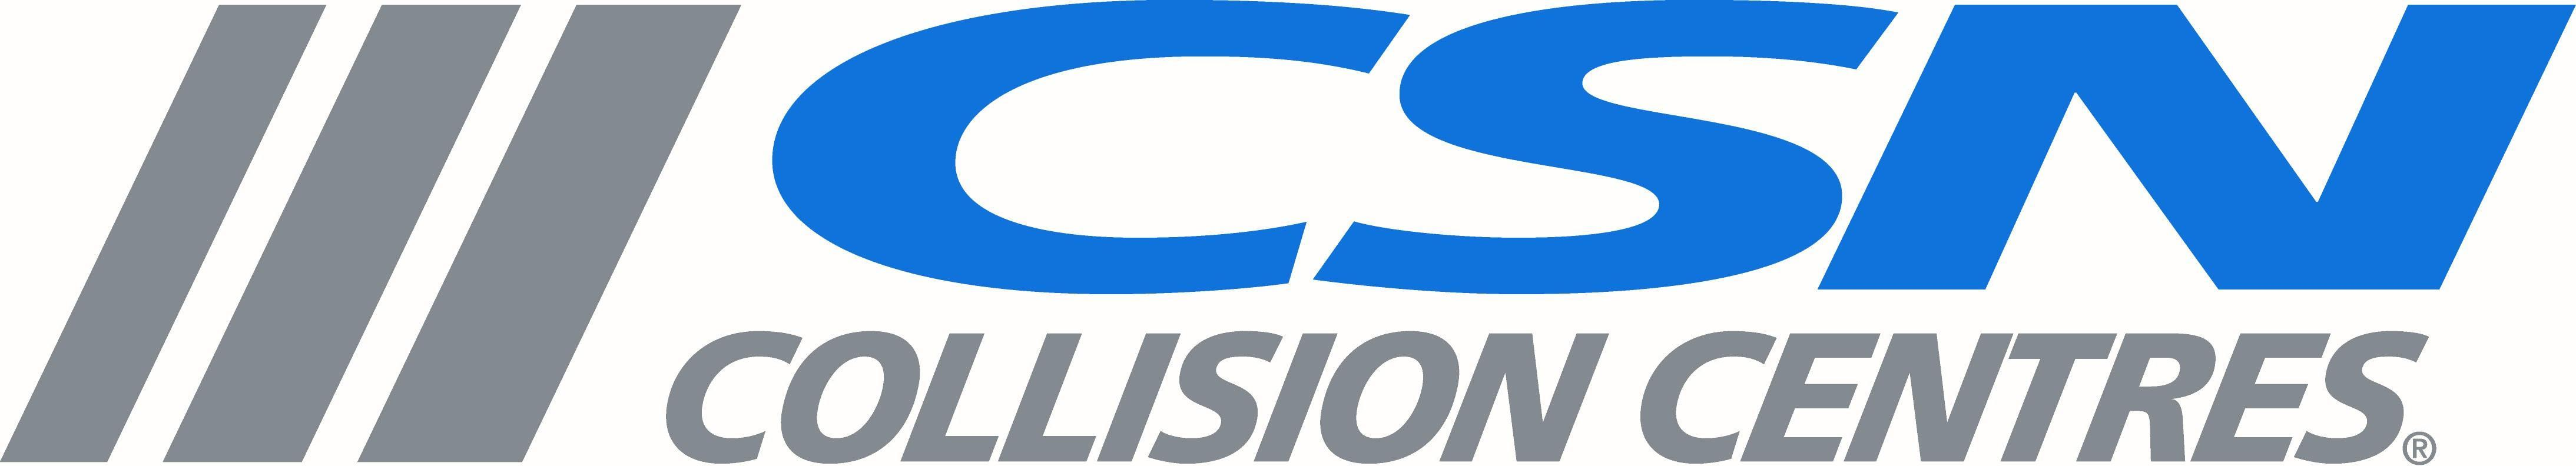 Ford Dealer Collision Center CSN image